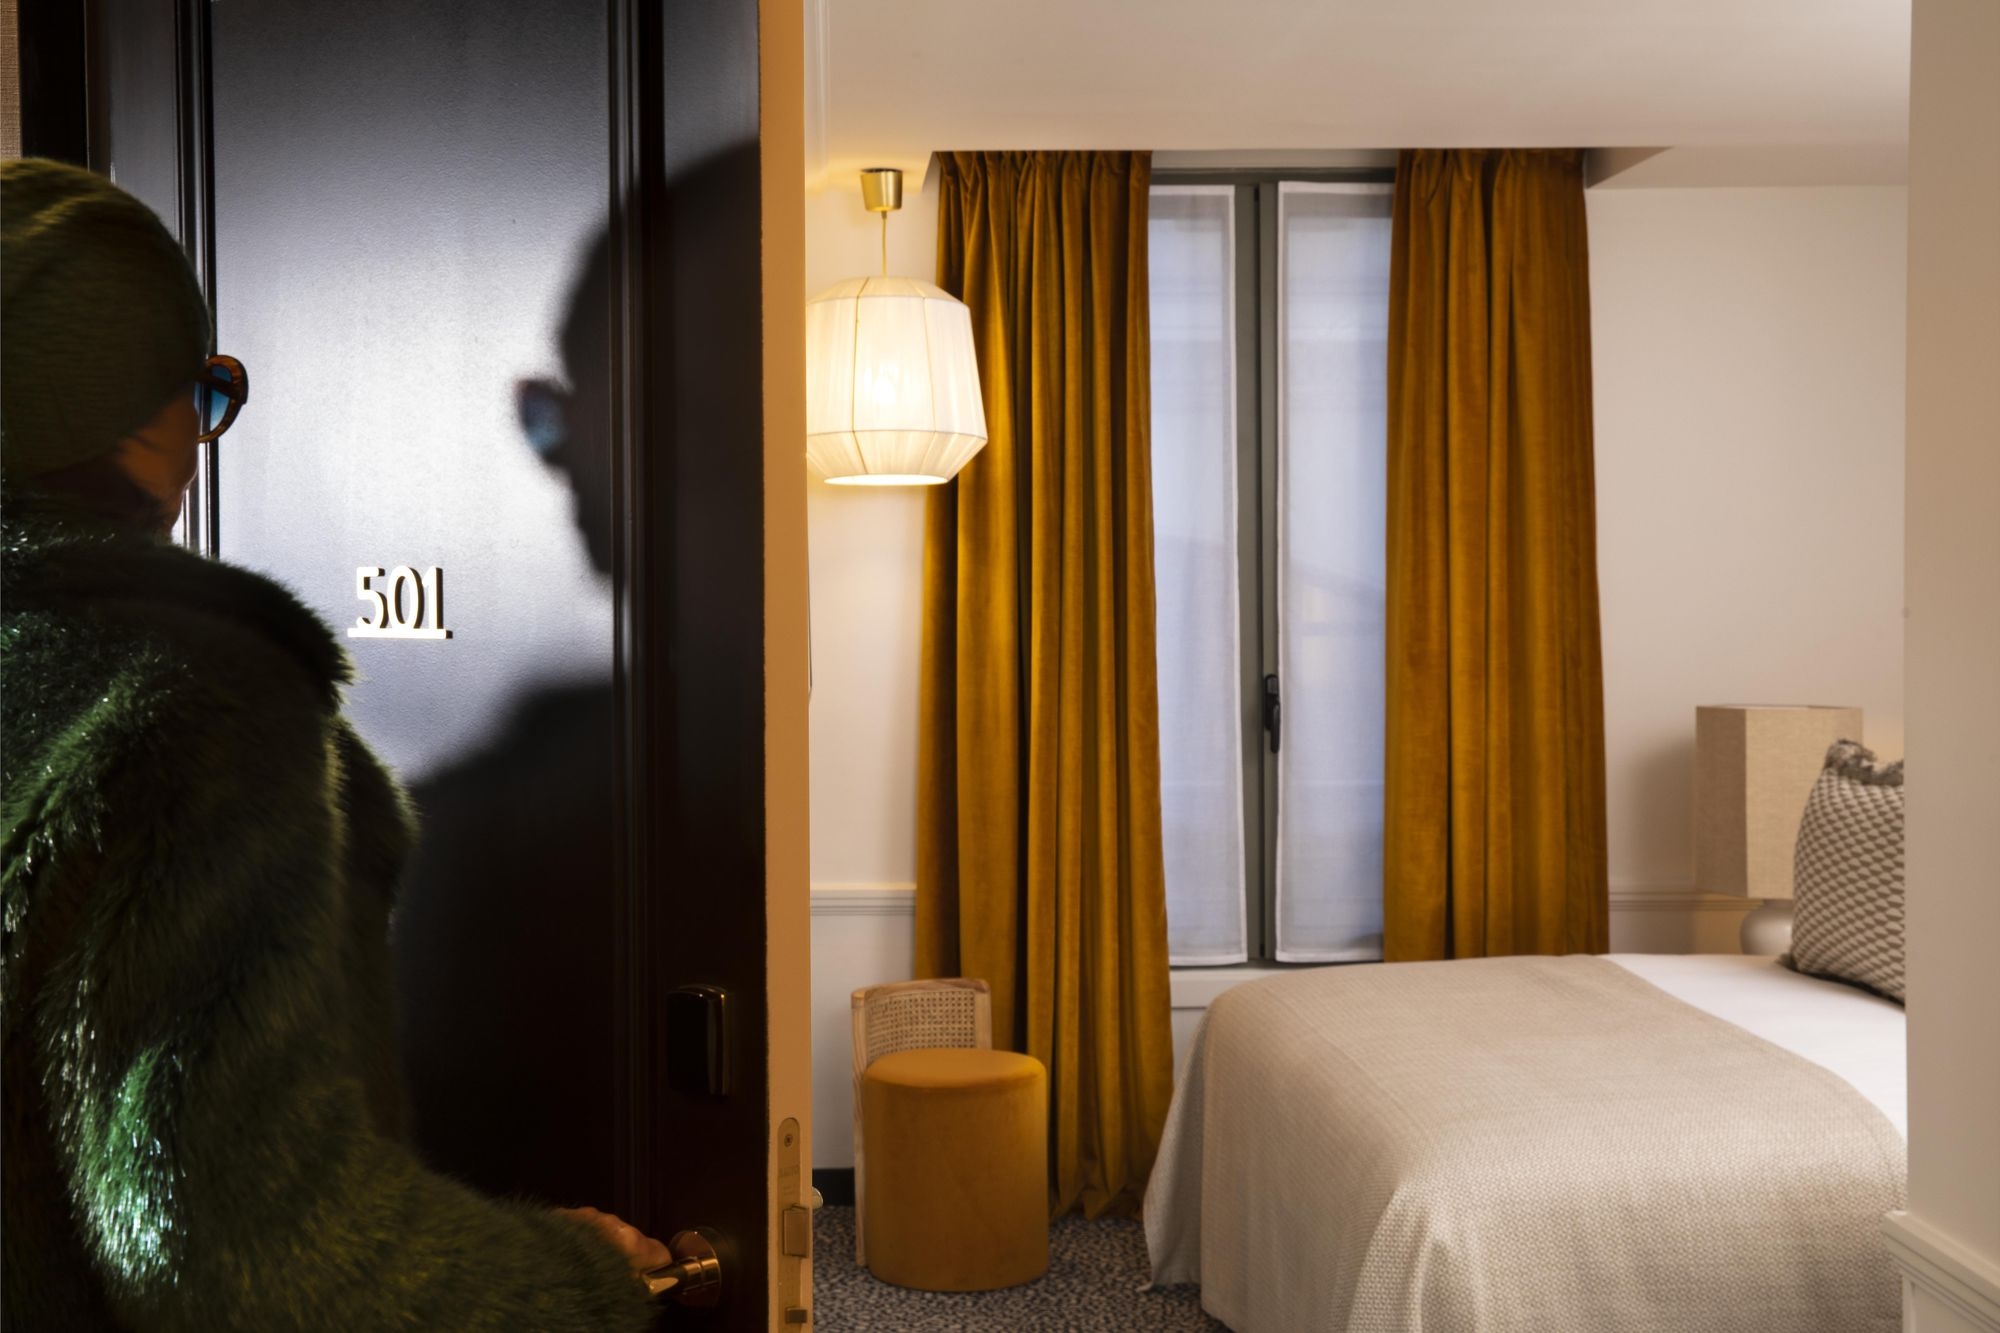 67/Chambres/Suite_Famille/Hotel_Gramont_Suite_Famille_2.jpg